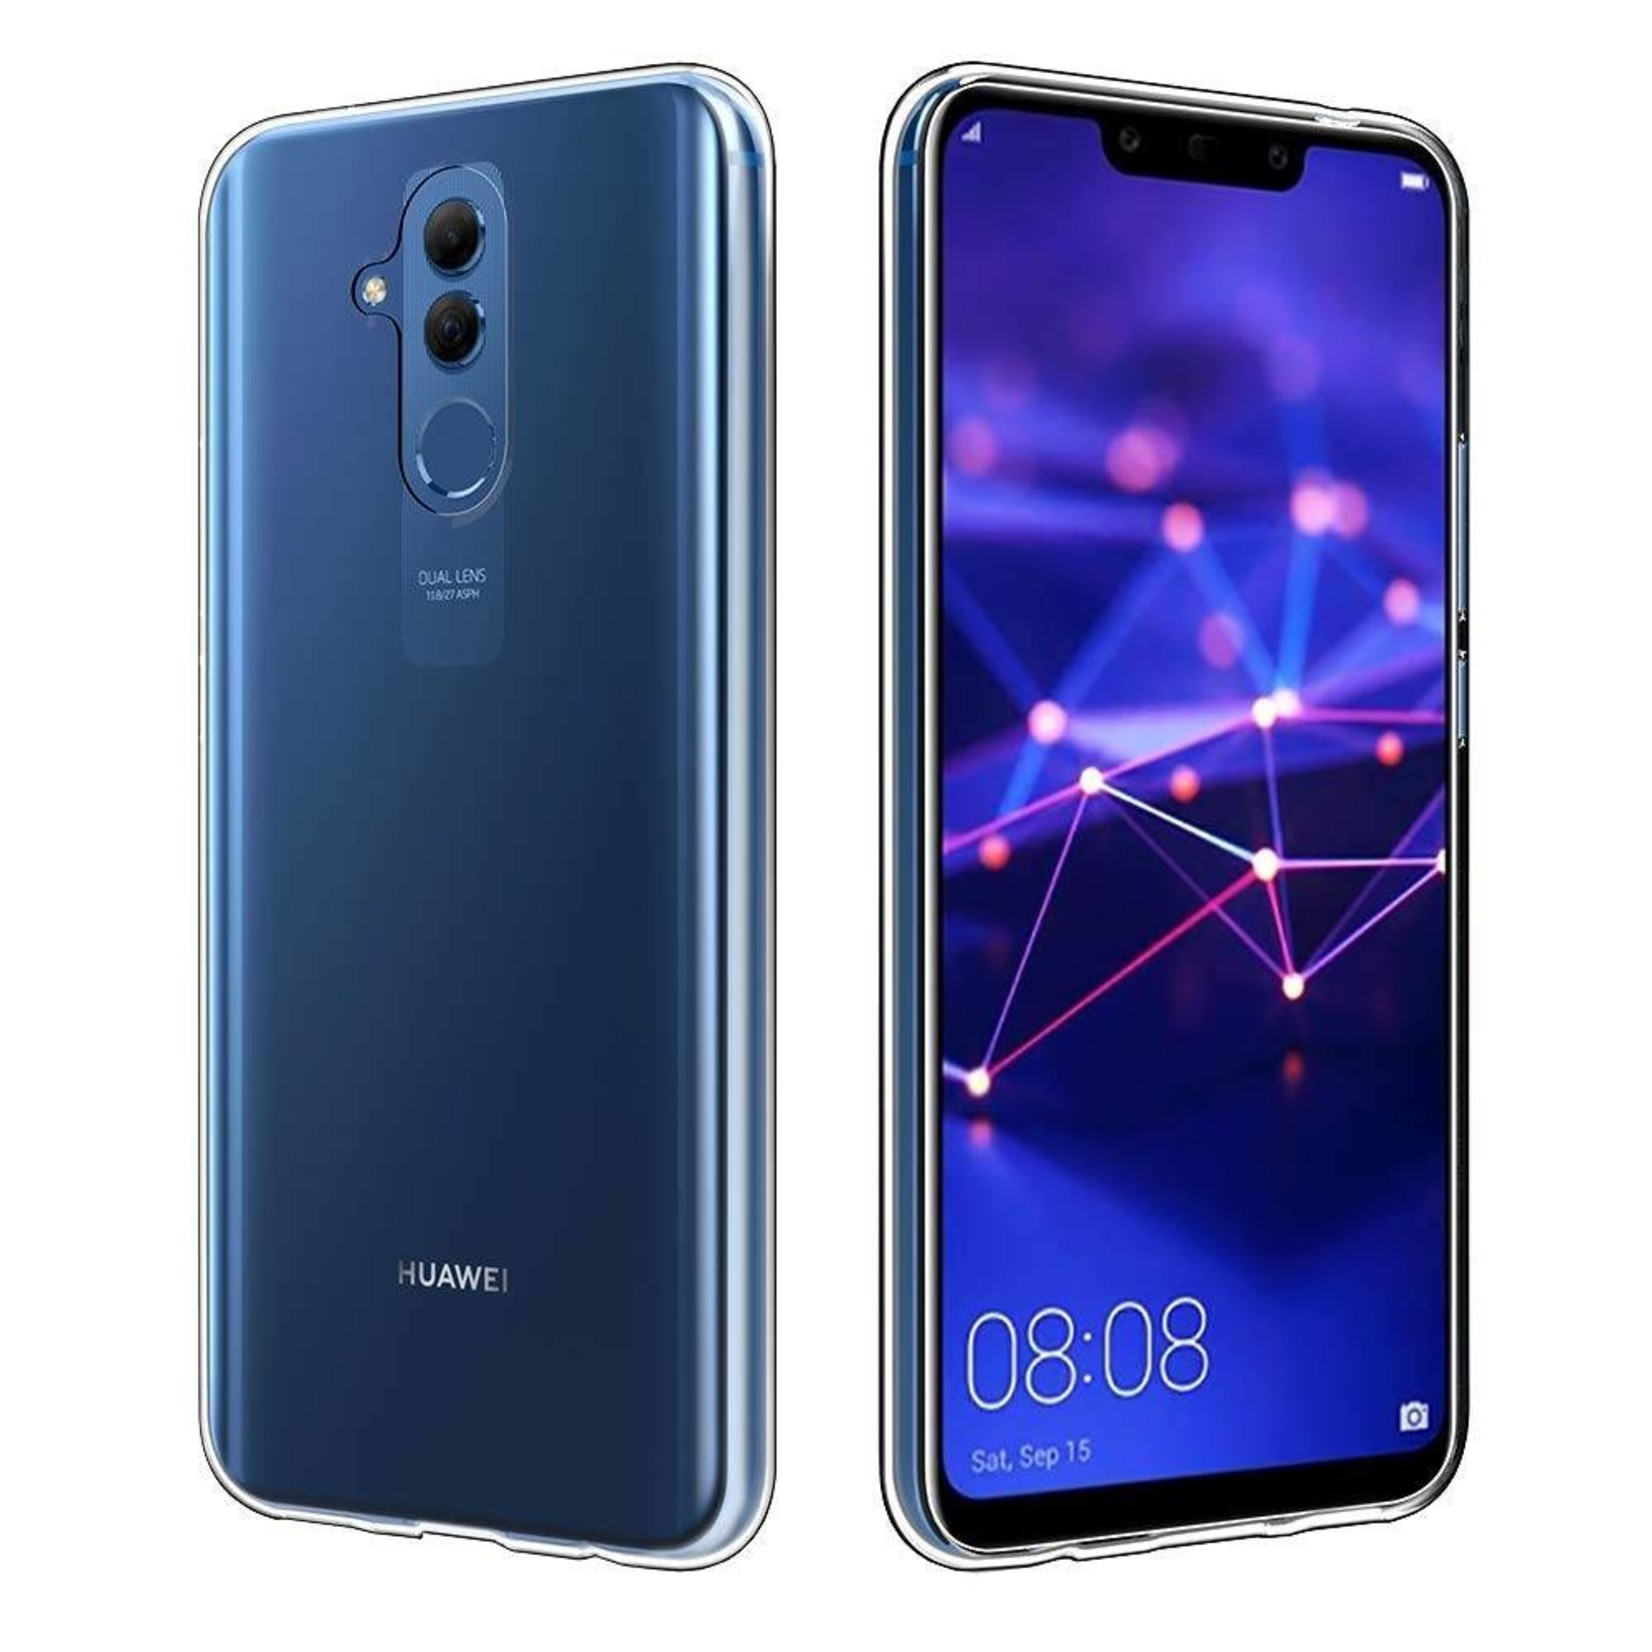 Colorfone Hoesje CoolSkin3T voor Huawei Mate 20 Lite Transparant Wit